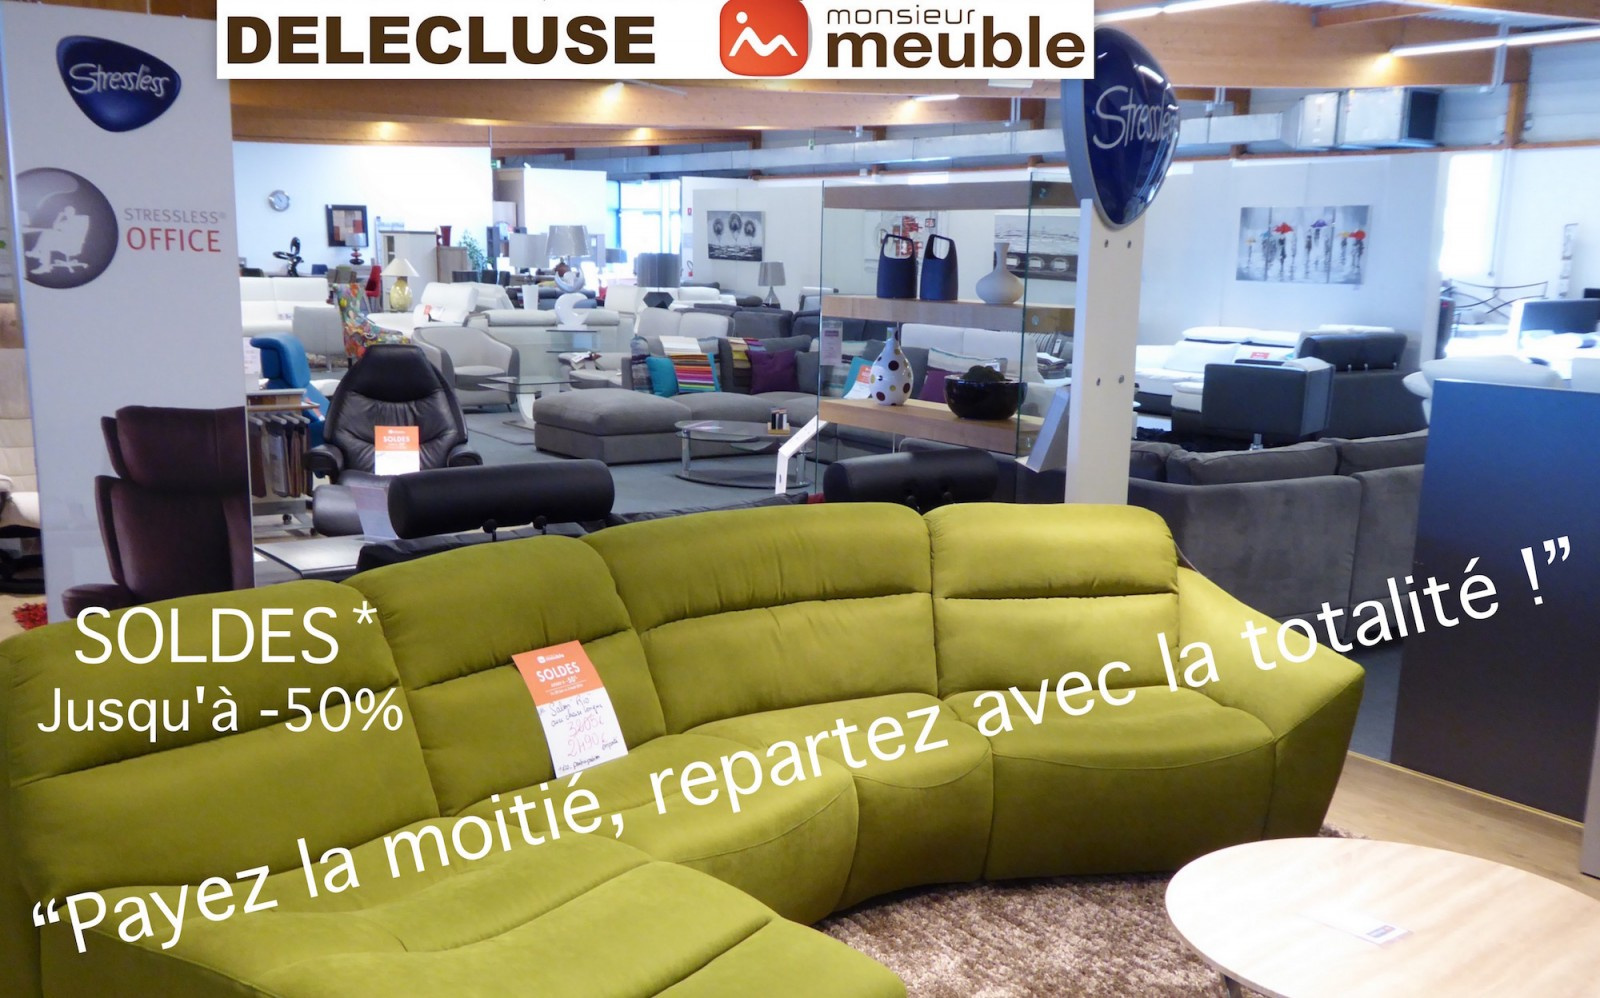 soldes d t chez monsieur meuble del cluse chalon sa ne info chalon l 39 actualit de info chalon. Black Bedroom Furniture Sets. Home Design Ideas